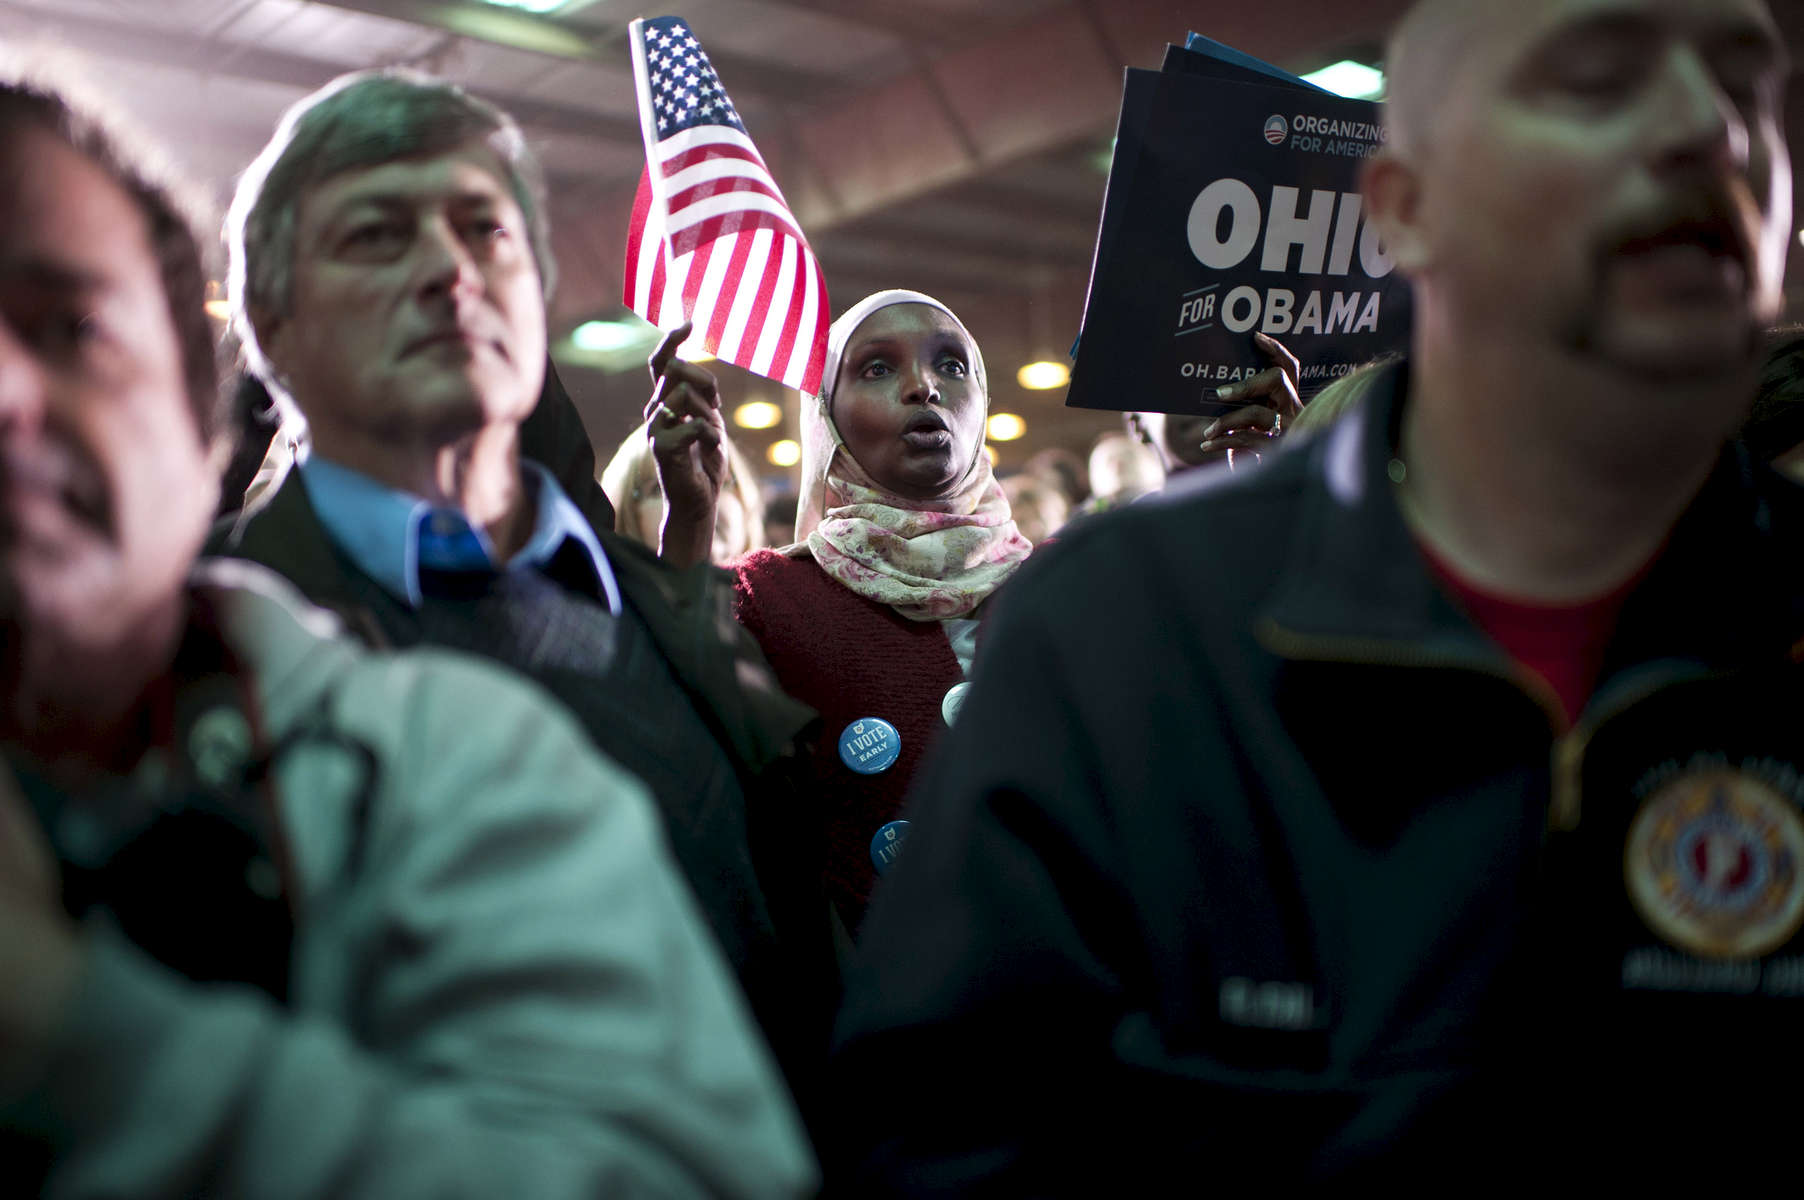 November 2, 2012 - Hilliard, OH: A woman waves a flag as she listens to President Barack Obama speak at a rally in the small town of Hilliard, OH a few days before the 2012 election.  (Scout Tufankjian for Obama for America/Polaris)